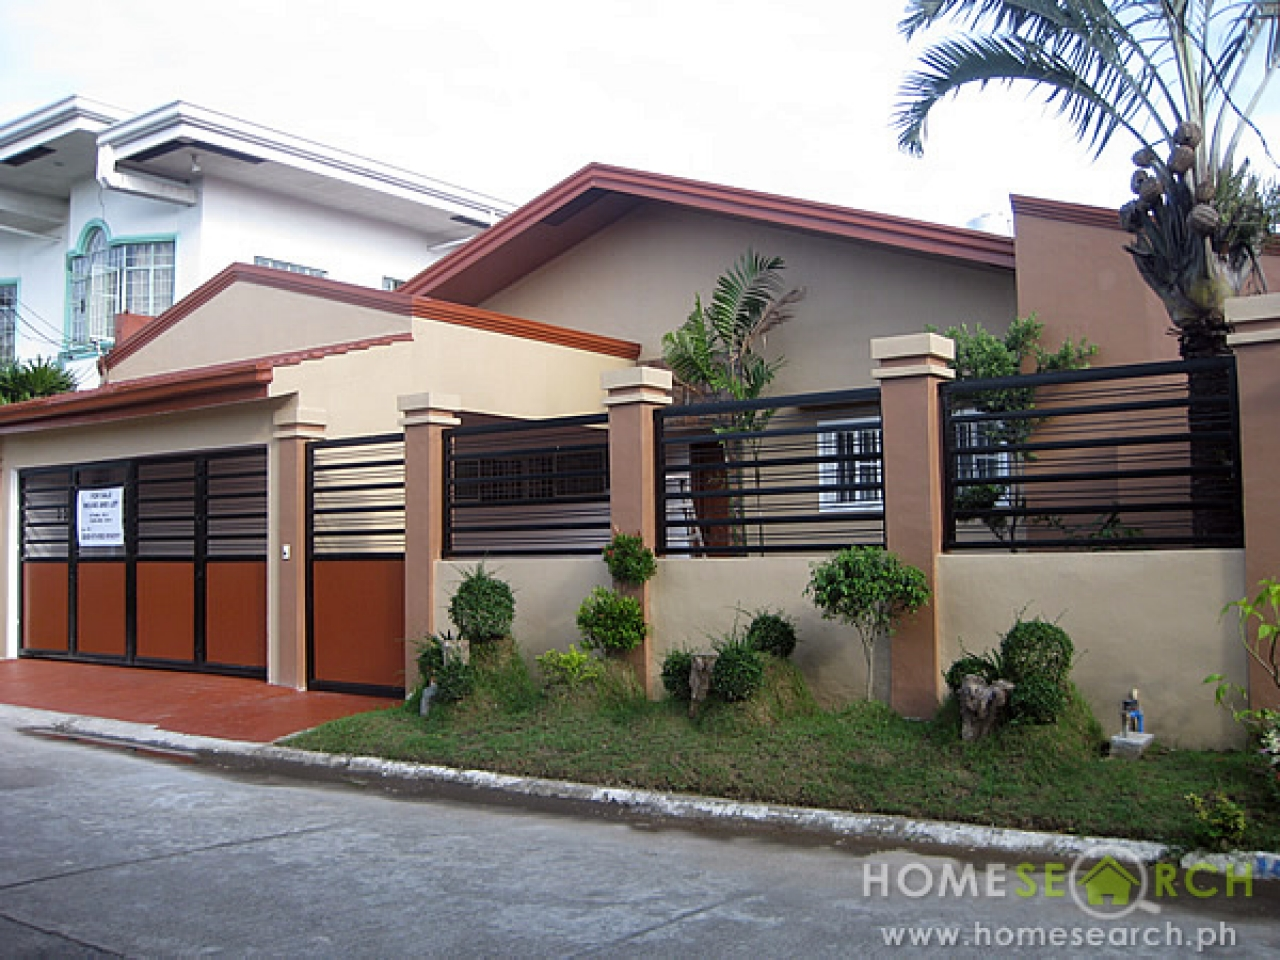 Simple bungalow house design philippines philippine for Minimalist bungalow house design